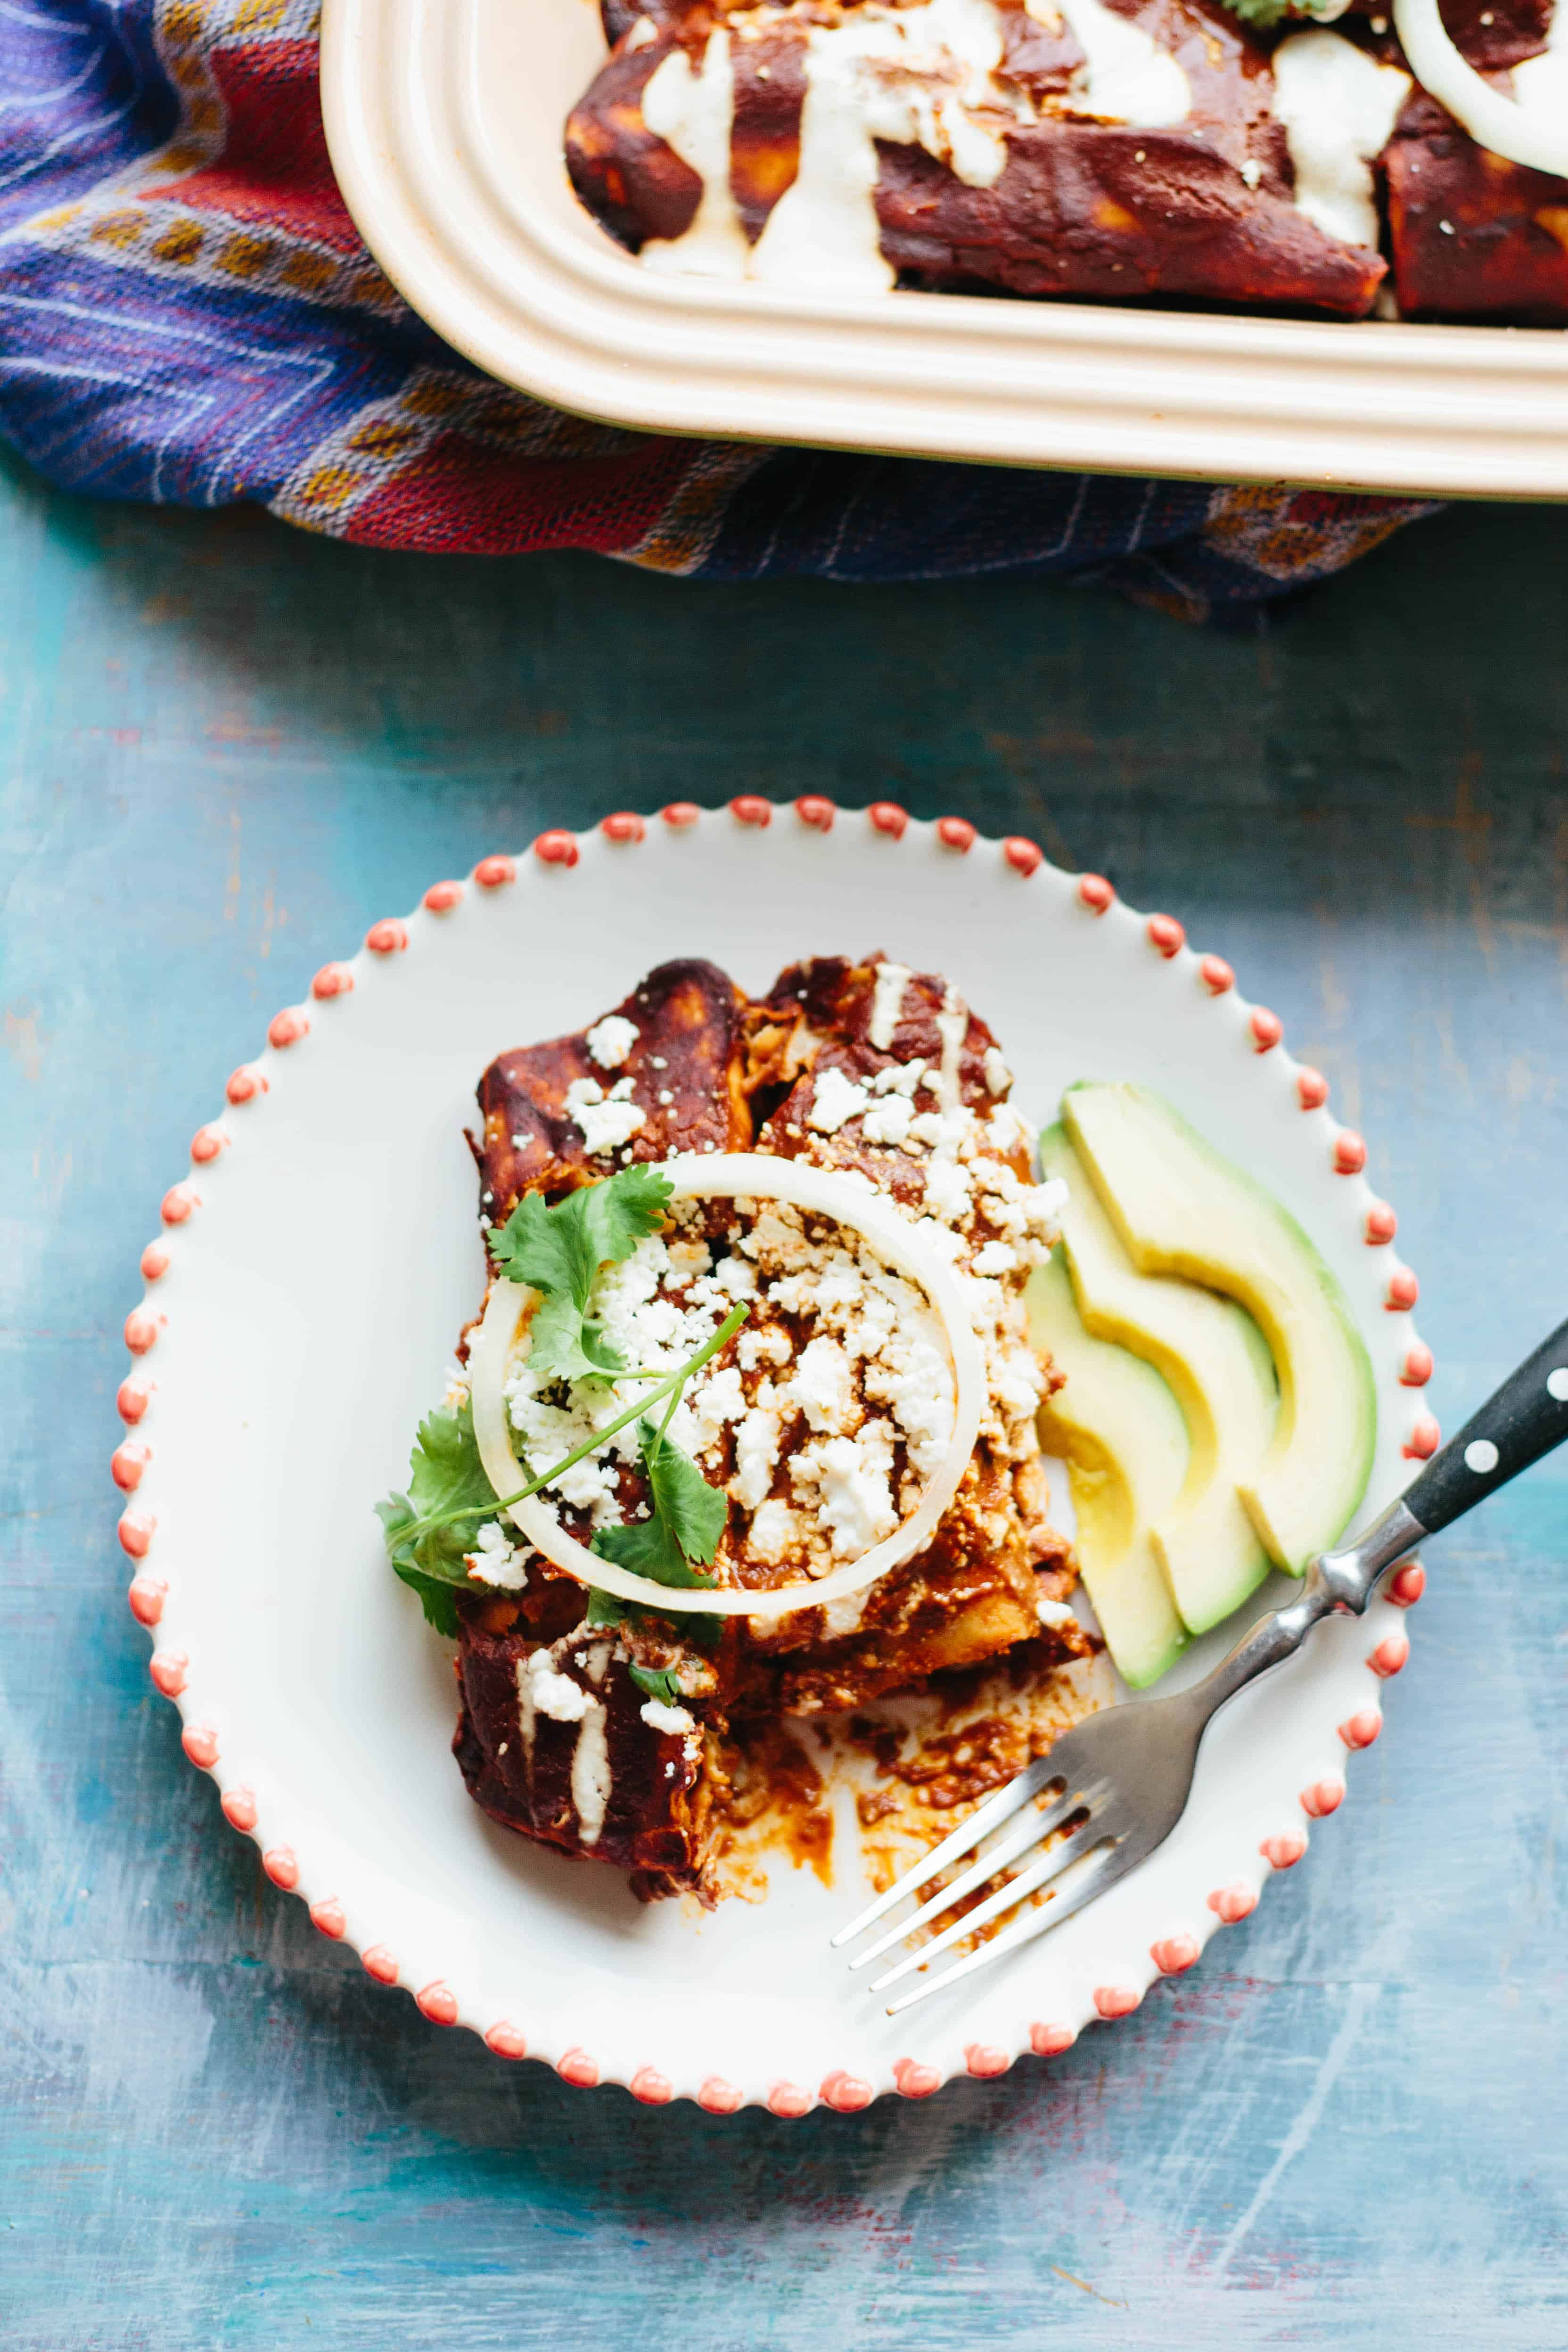 Full dinner plate of a chicken mole enchilada topped with chihuahua cheese, cilantro, and sliced avocado.